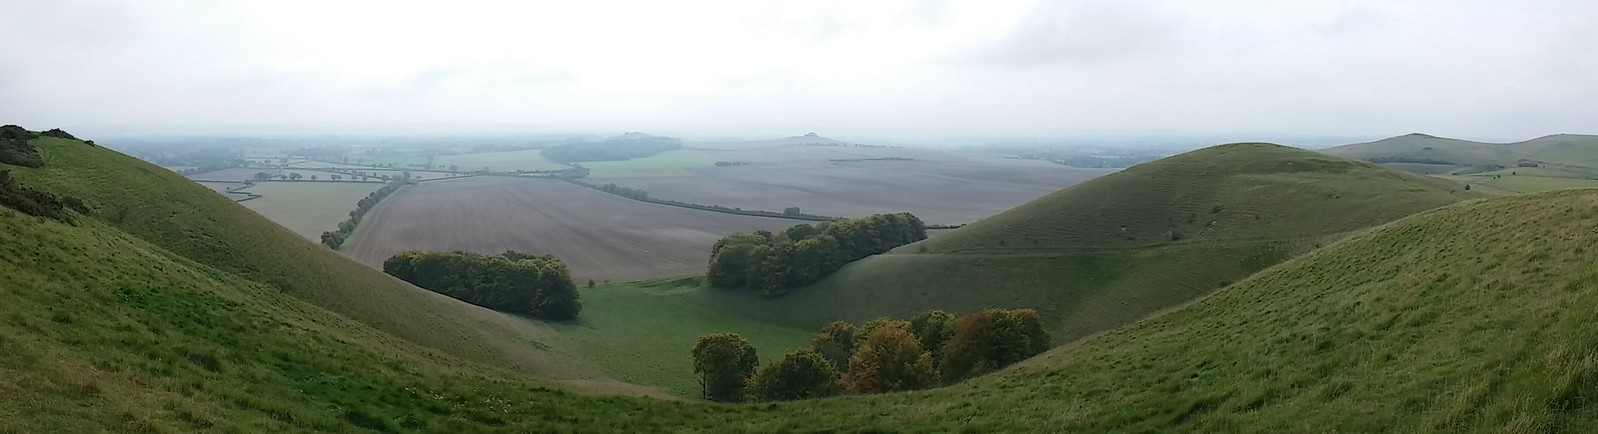 Panoramic View into Pewsey Vale , with Knap Hill and Walkers Hill on the right SWC Walk 127 Pewsey Circular; taken by Paul A.